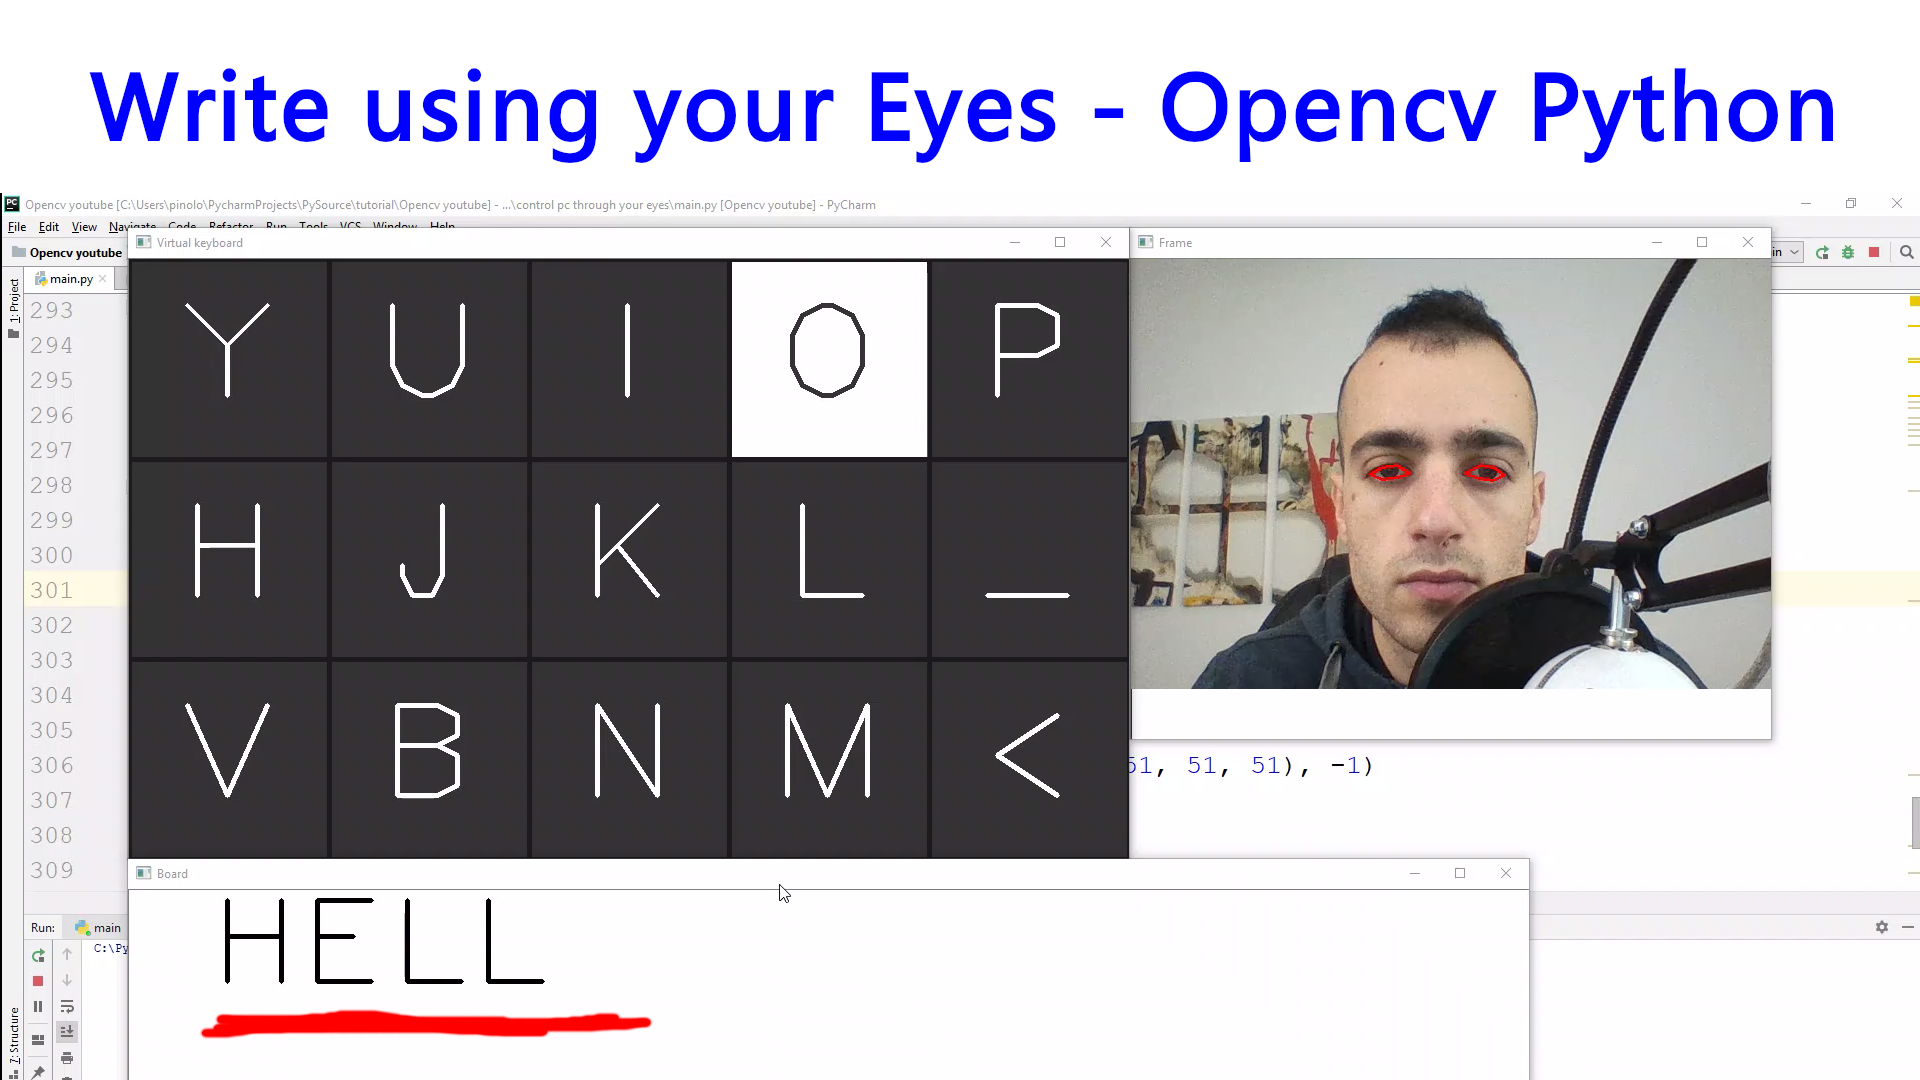 Write using your Eyes – Gaze controlled keyboard with Python and